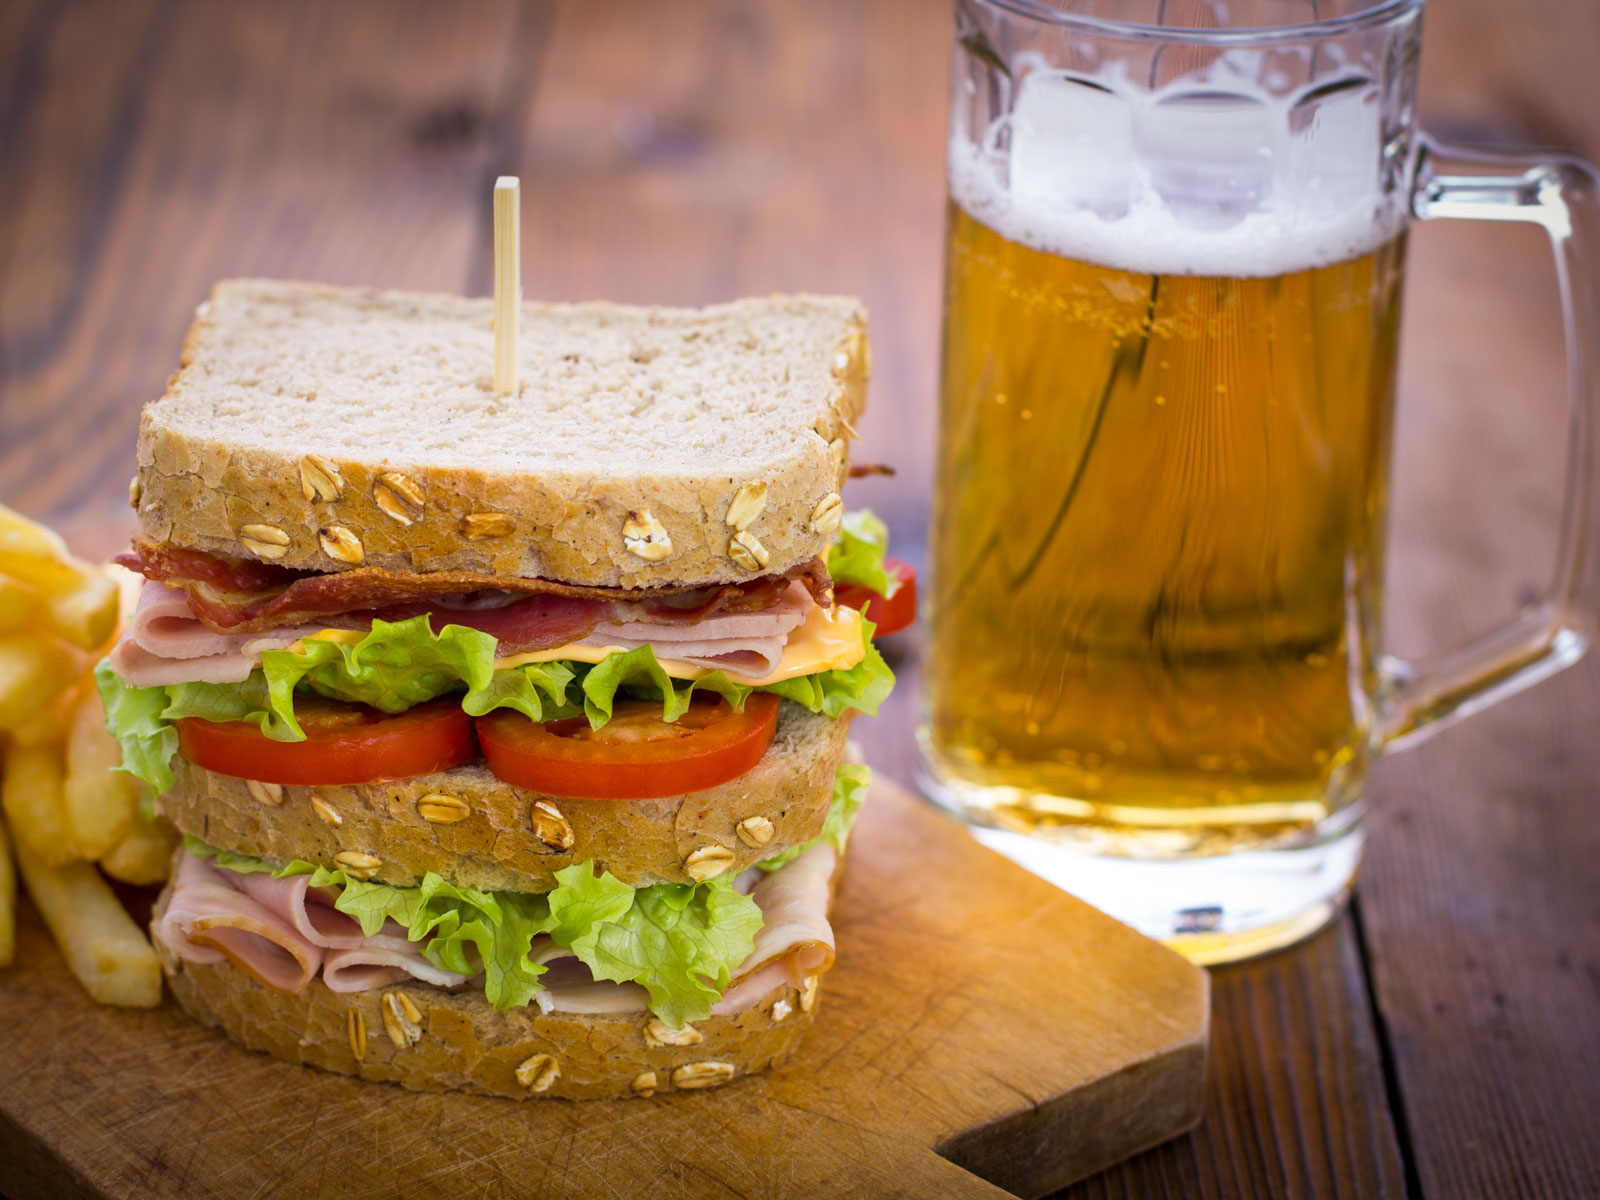 This British Retail Giant Is Turning Sandwiches Into Beer